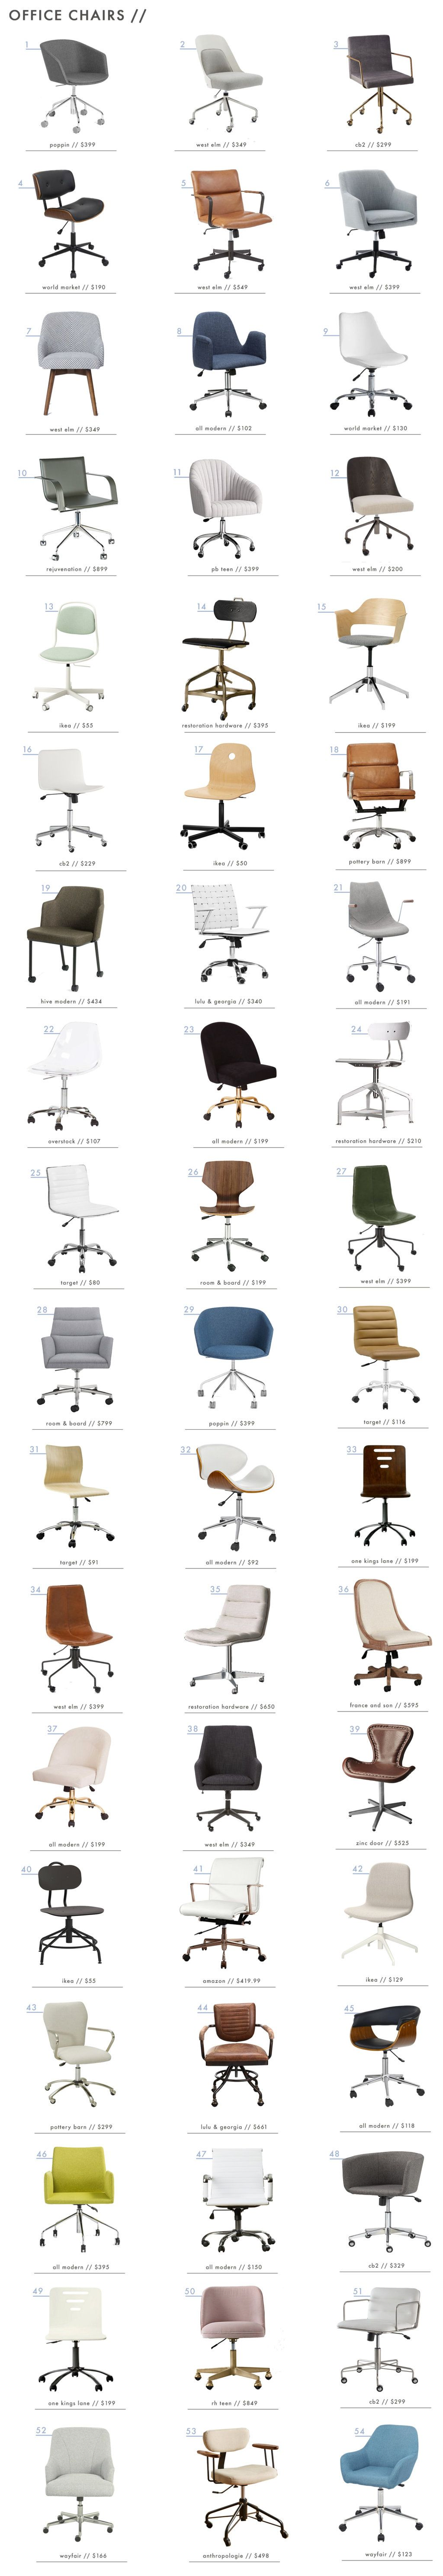 When it comes to office chairs it usually means function over form. Frankly, it's such a boring but necessary thing to buy. We